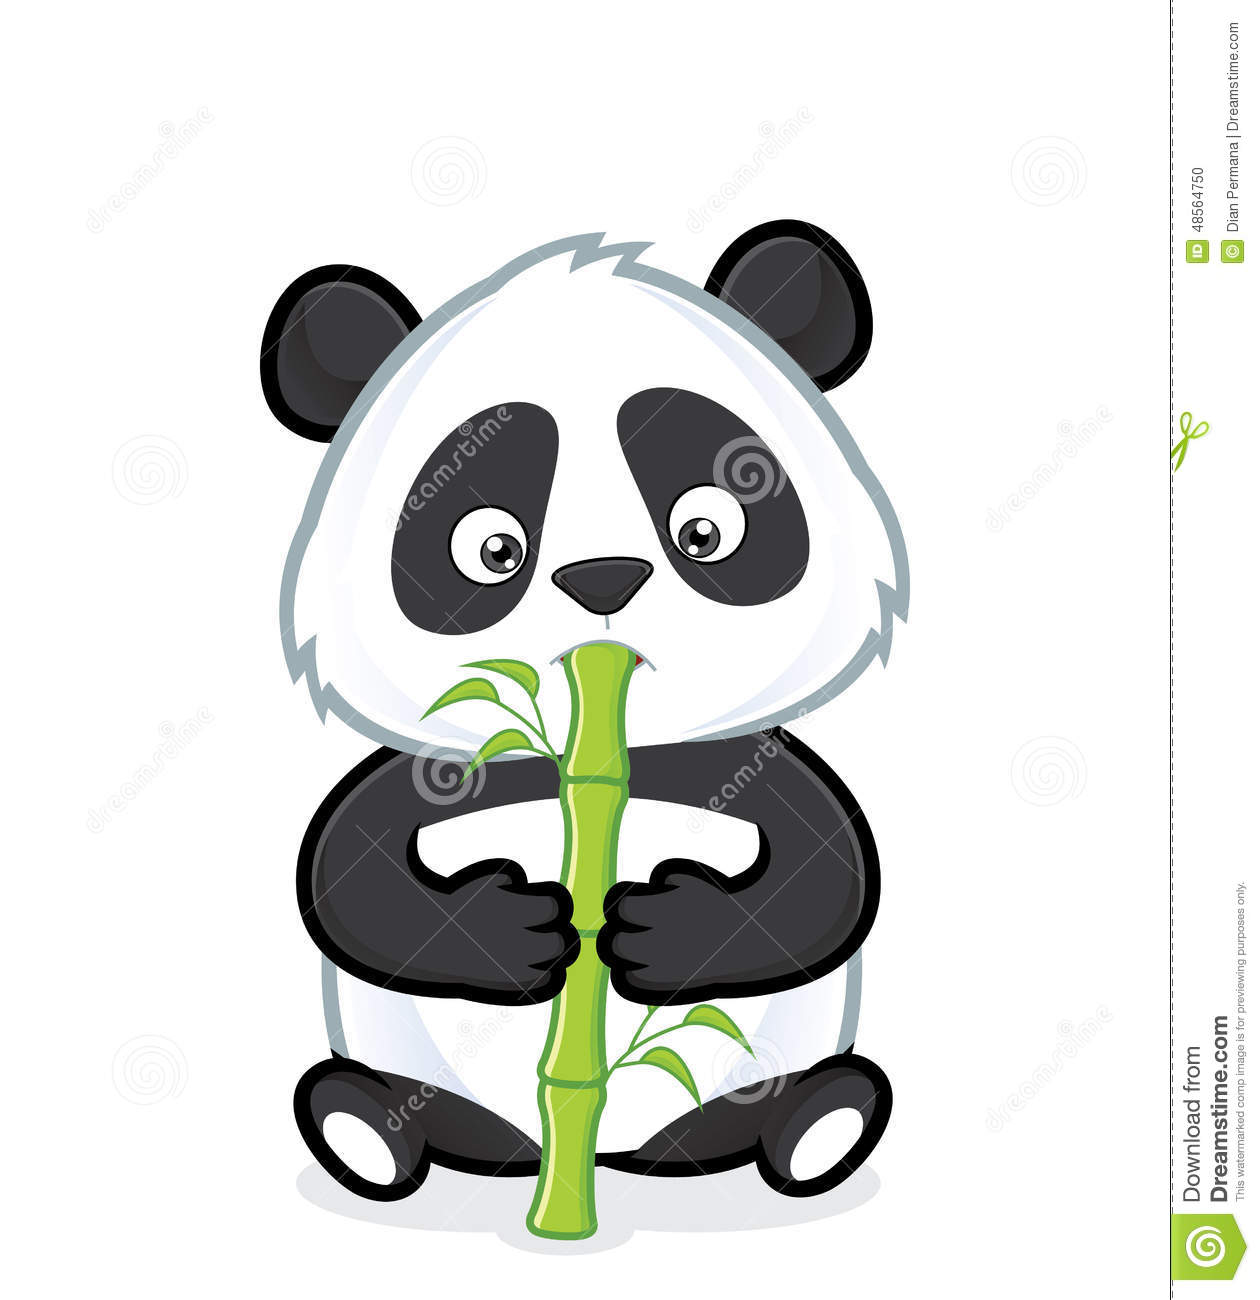 Clip Art Panda Clipart bamboo panda clipart kid eating picture cartoon character 48564750 jpg